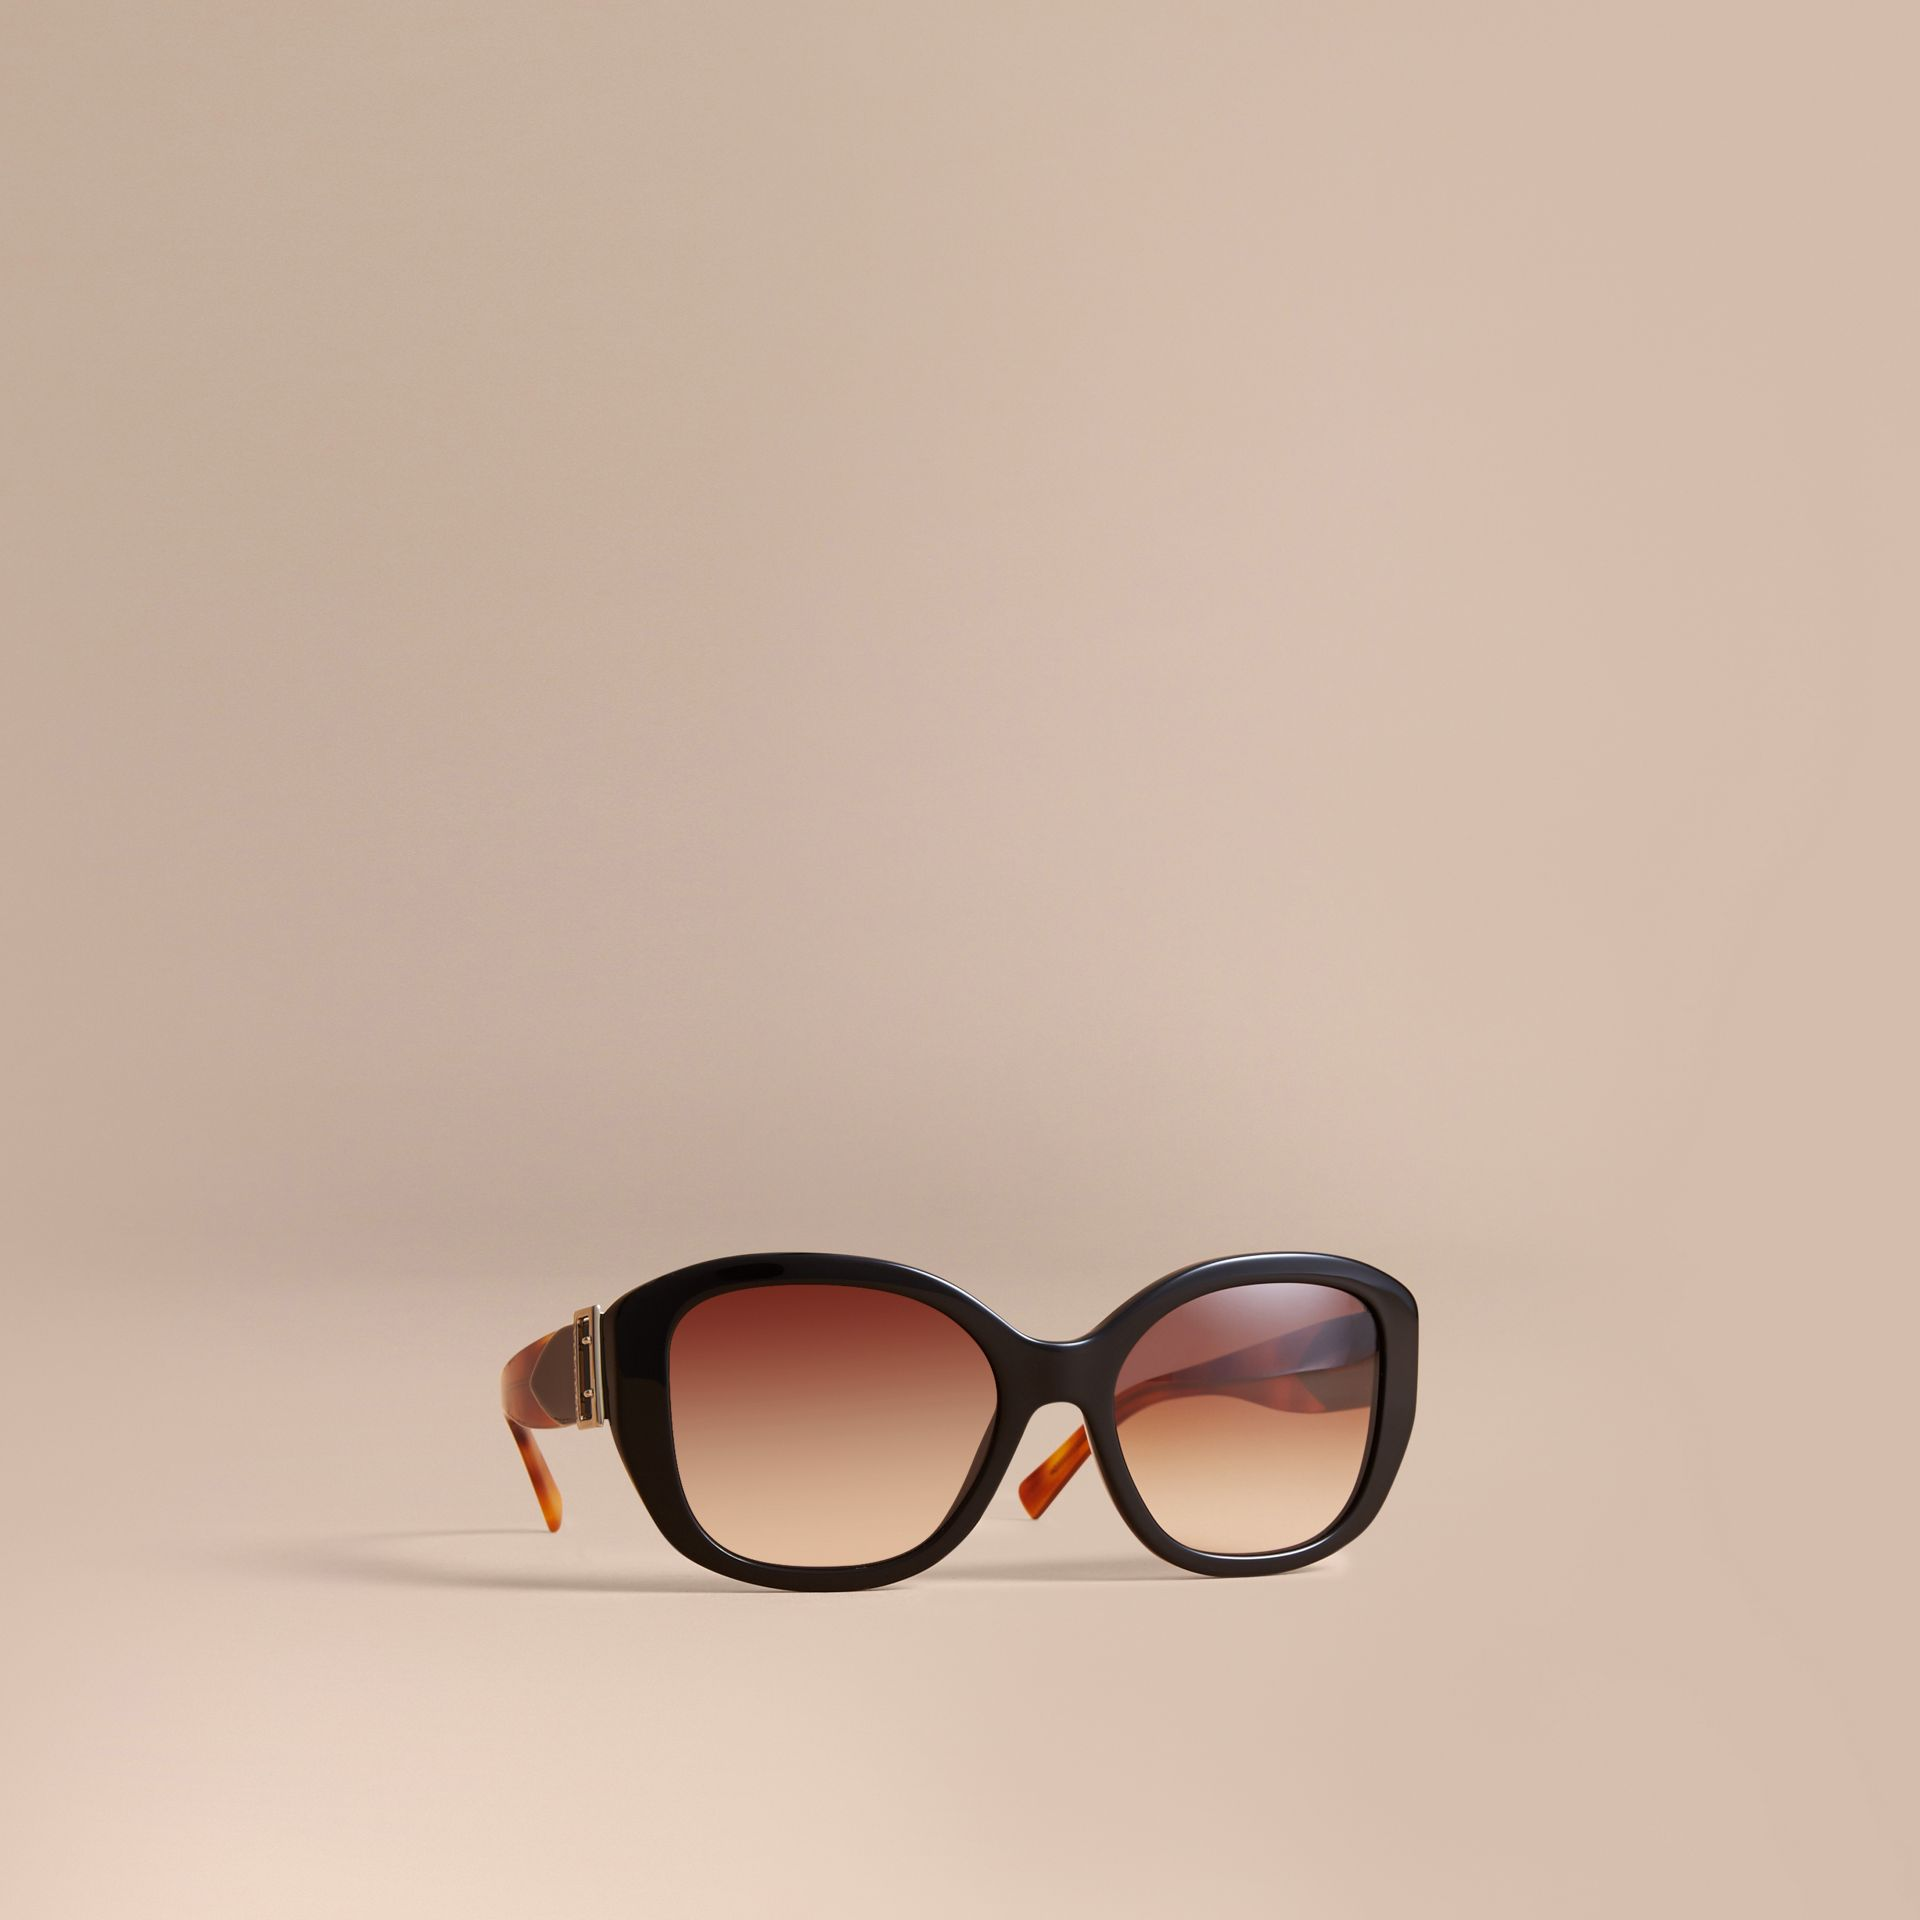 Buckle Detail Oversize Square Frame Sunglasses in Black - Women | Burberry Canada - gallery image 0